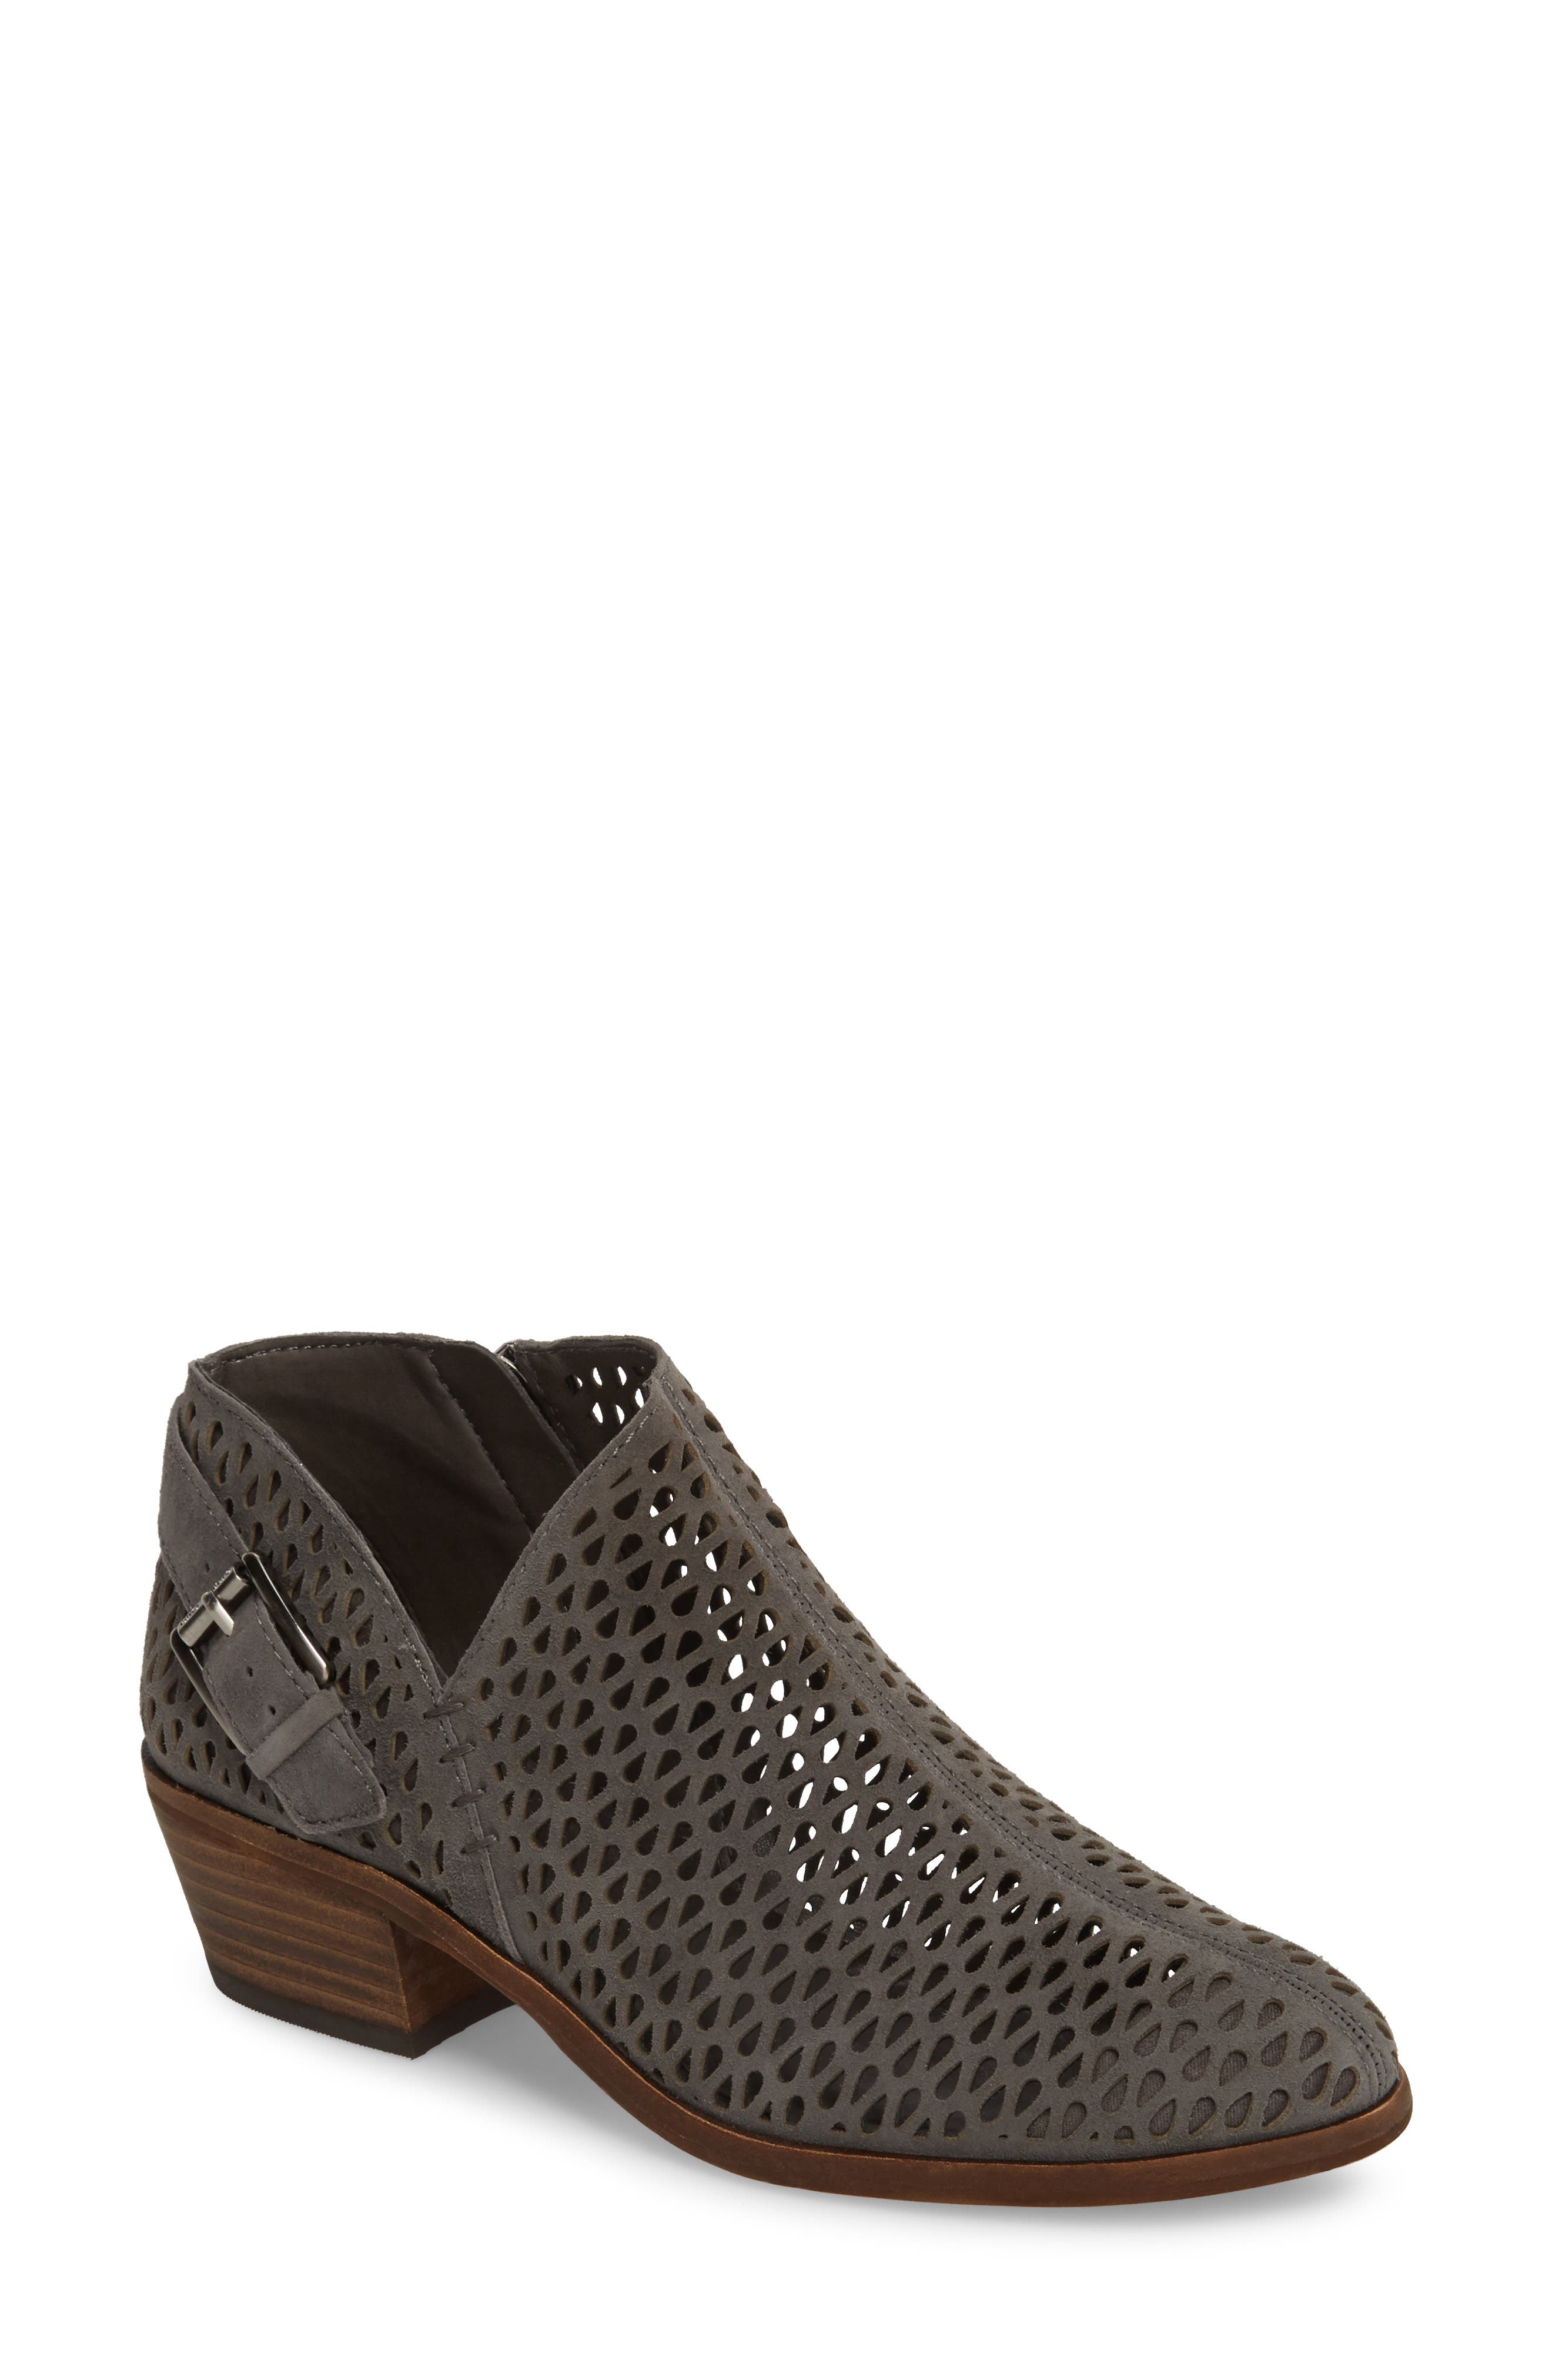 Alternate Image 1 Selected - Vince Camuto Phandra Bootie (Women)